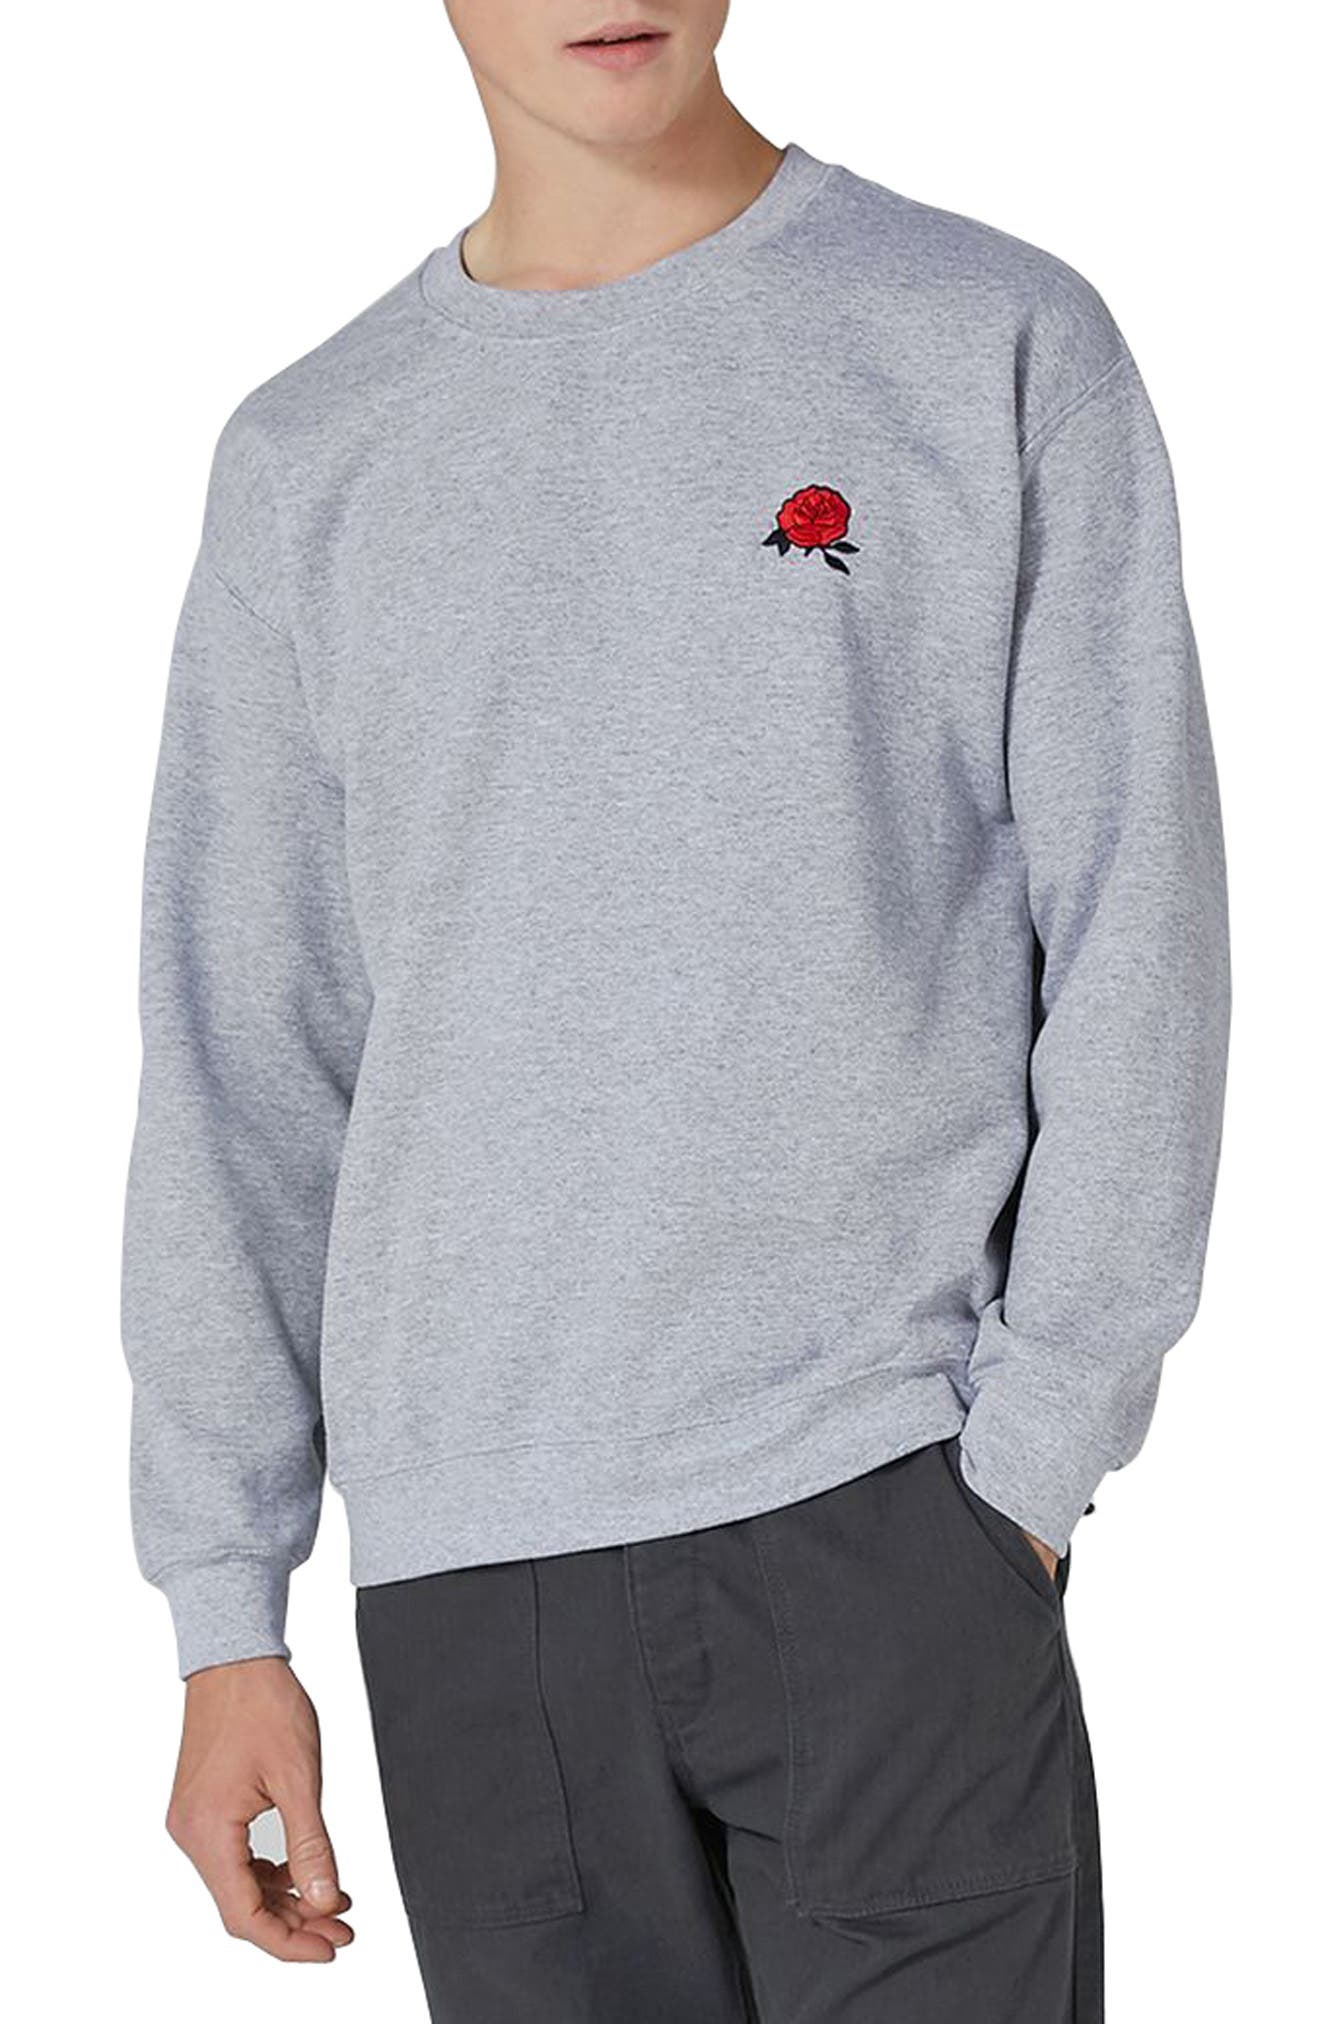 Topman Rose Embroidered Sweatshirt